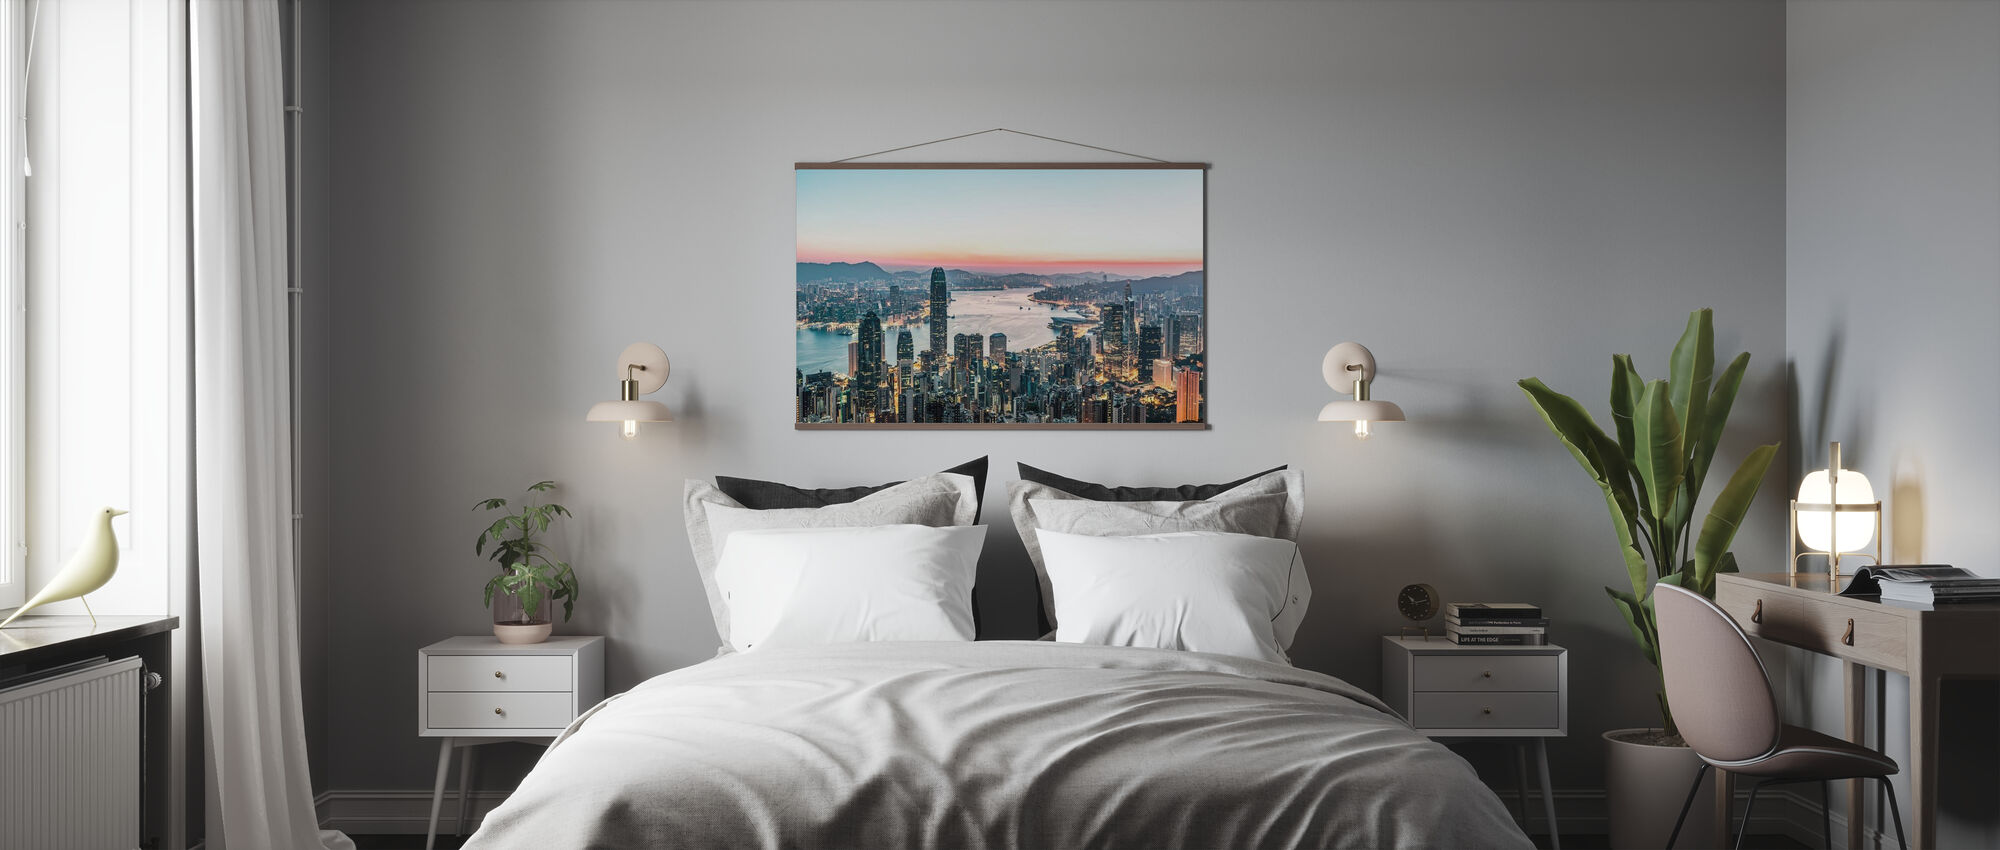 Hong Kong Sunrise - Plakat - Soverom